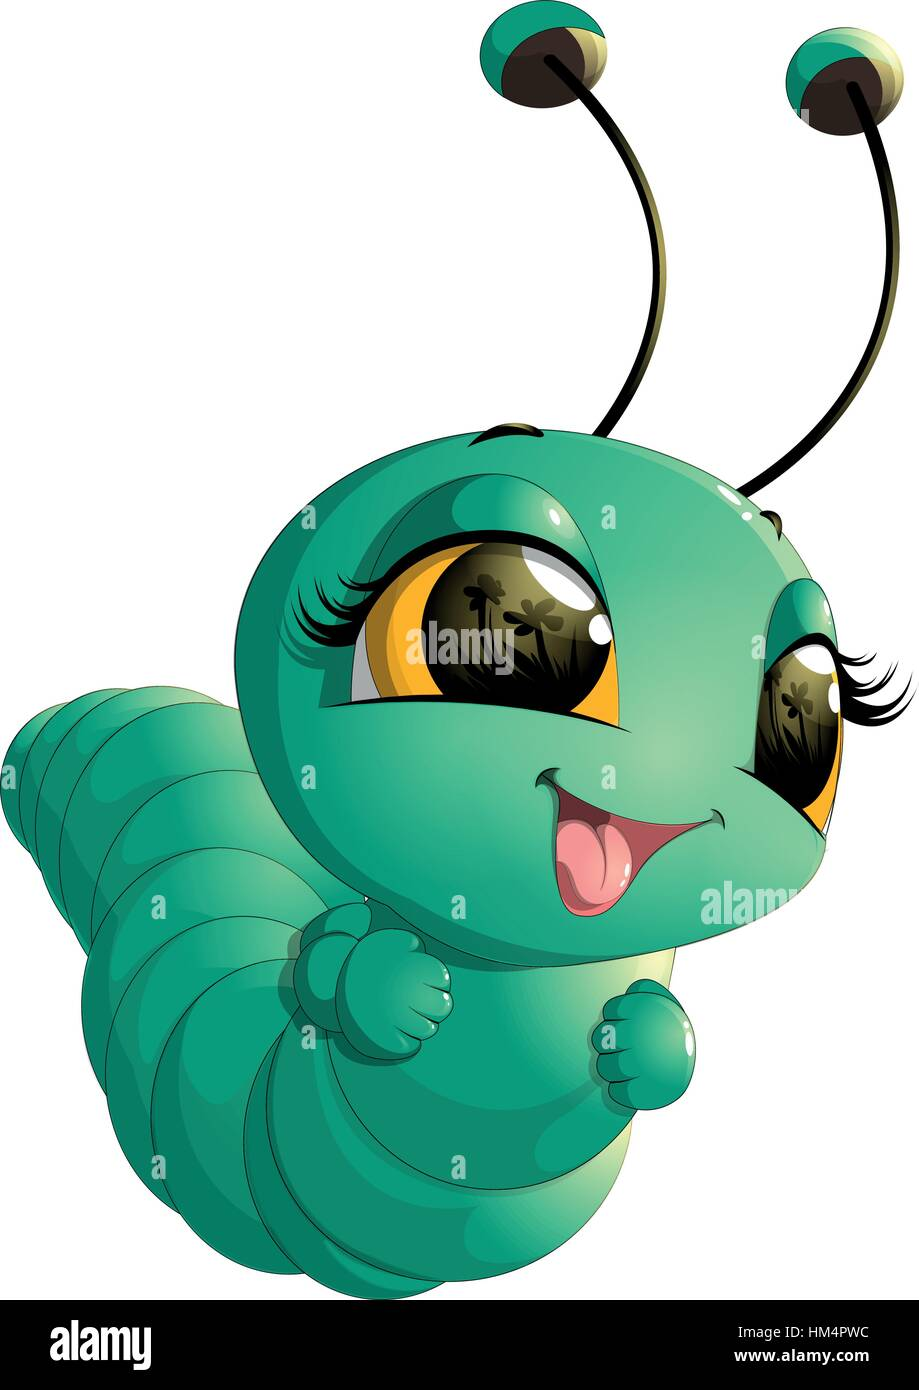 Cartoon Caterpillar High Resolution Stock Photography And Images